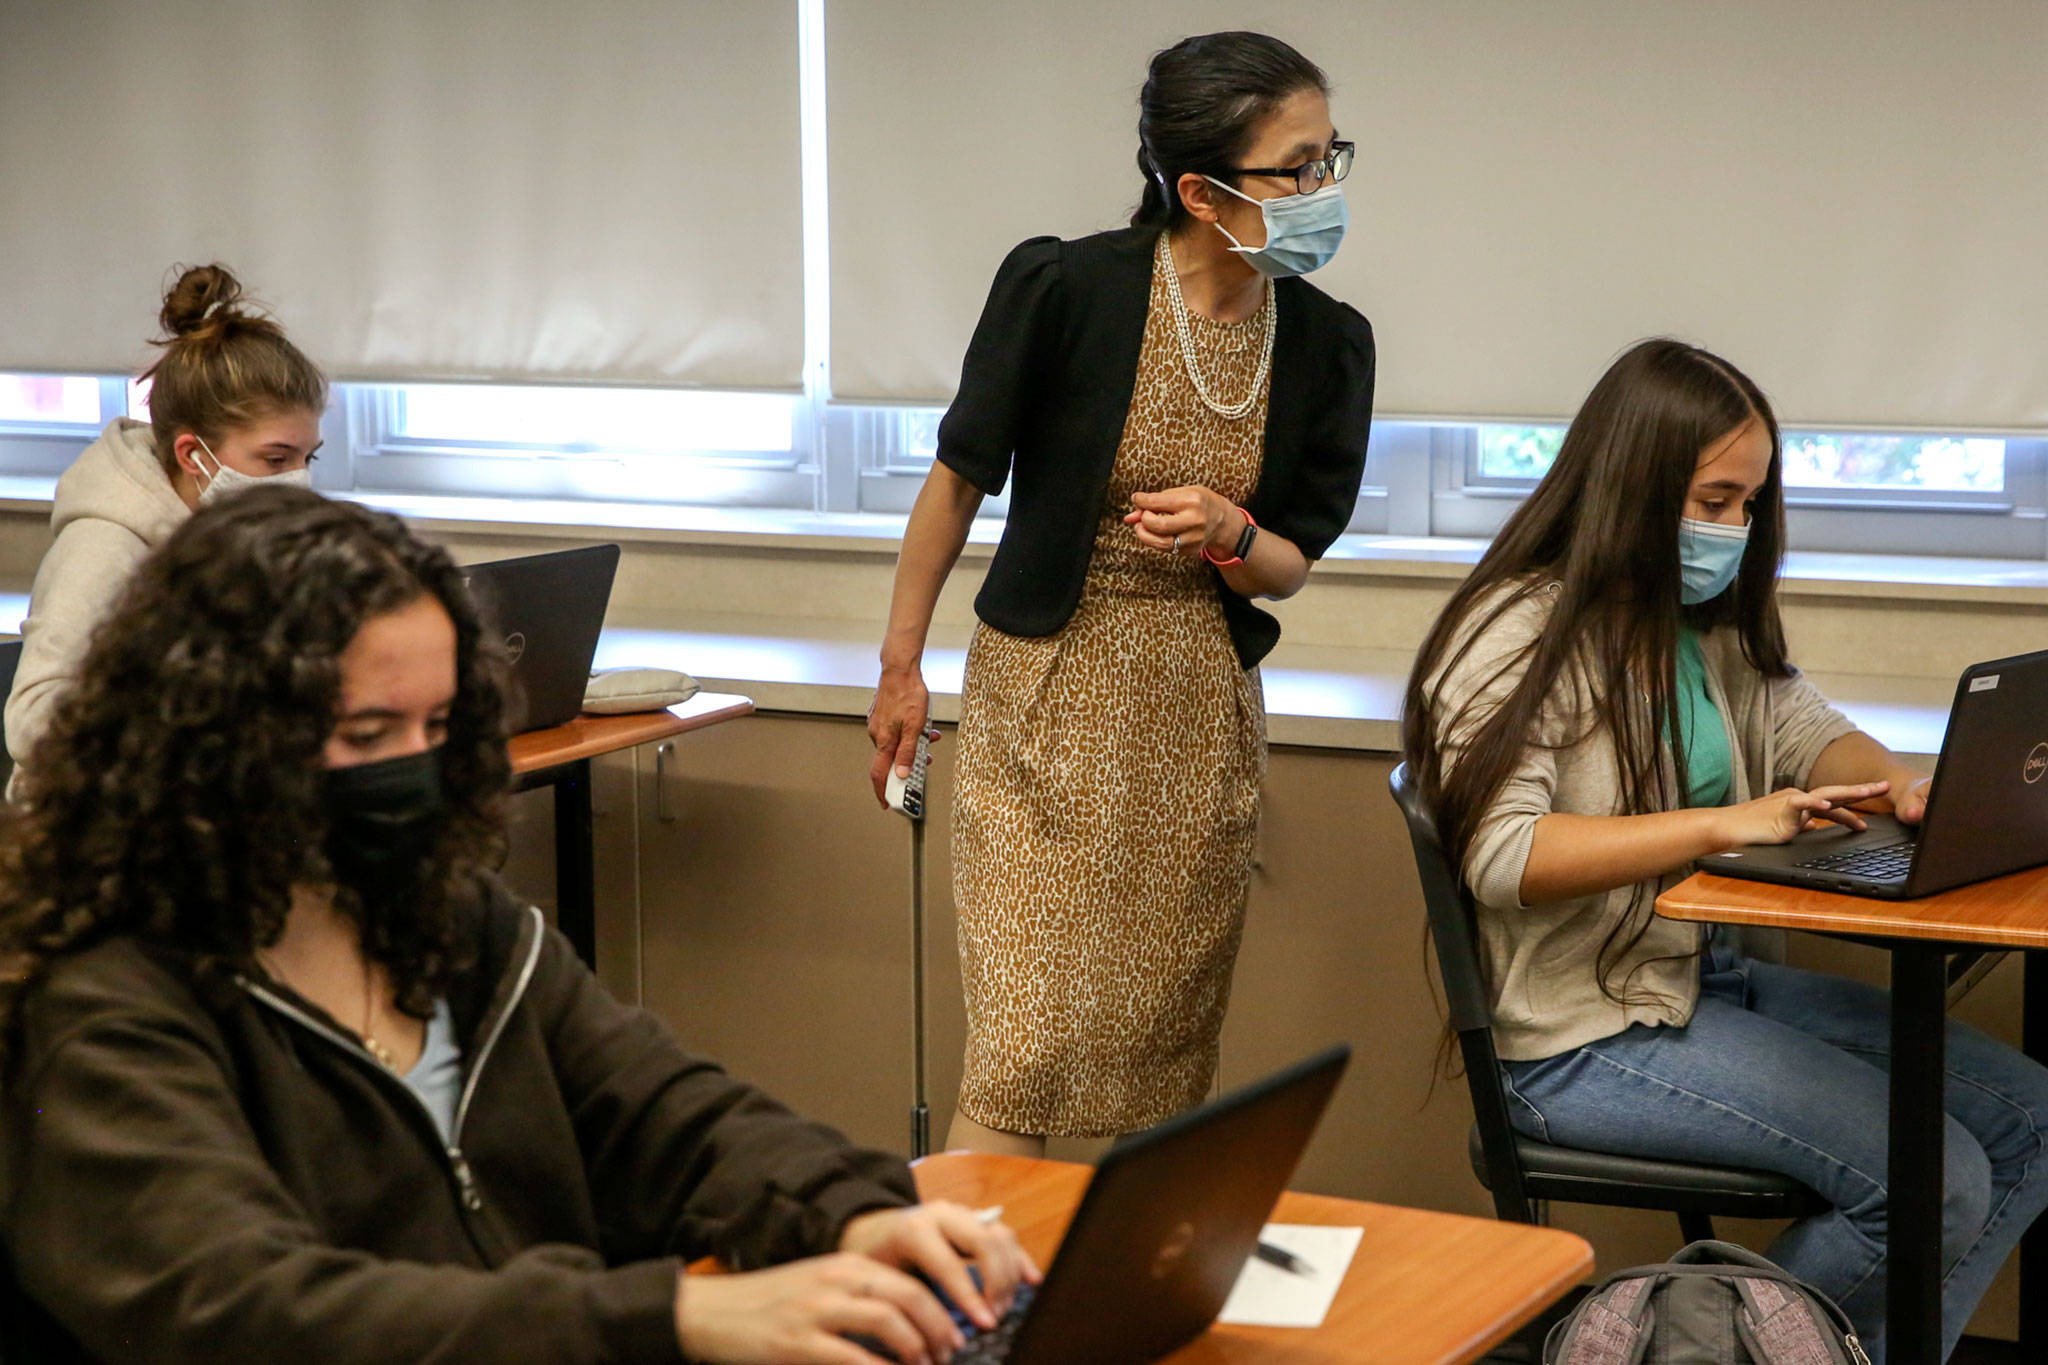 Bin Yang leads her class Wednesday morning at Snohomish High School on June 2, 2021. (Kevin Clark / The Herald)